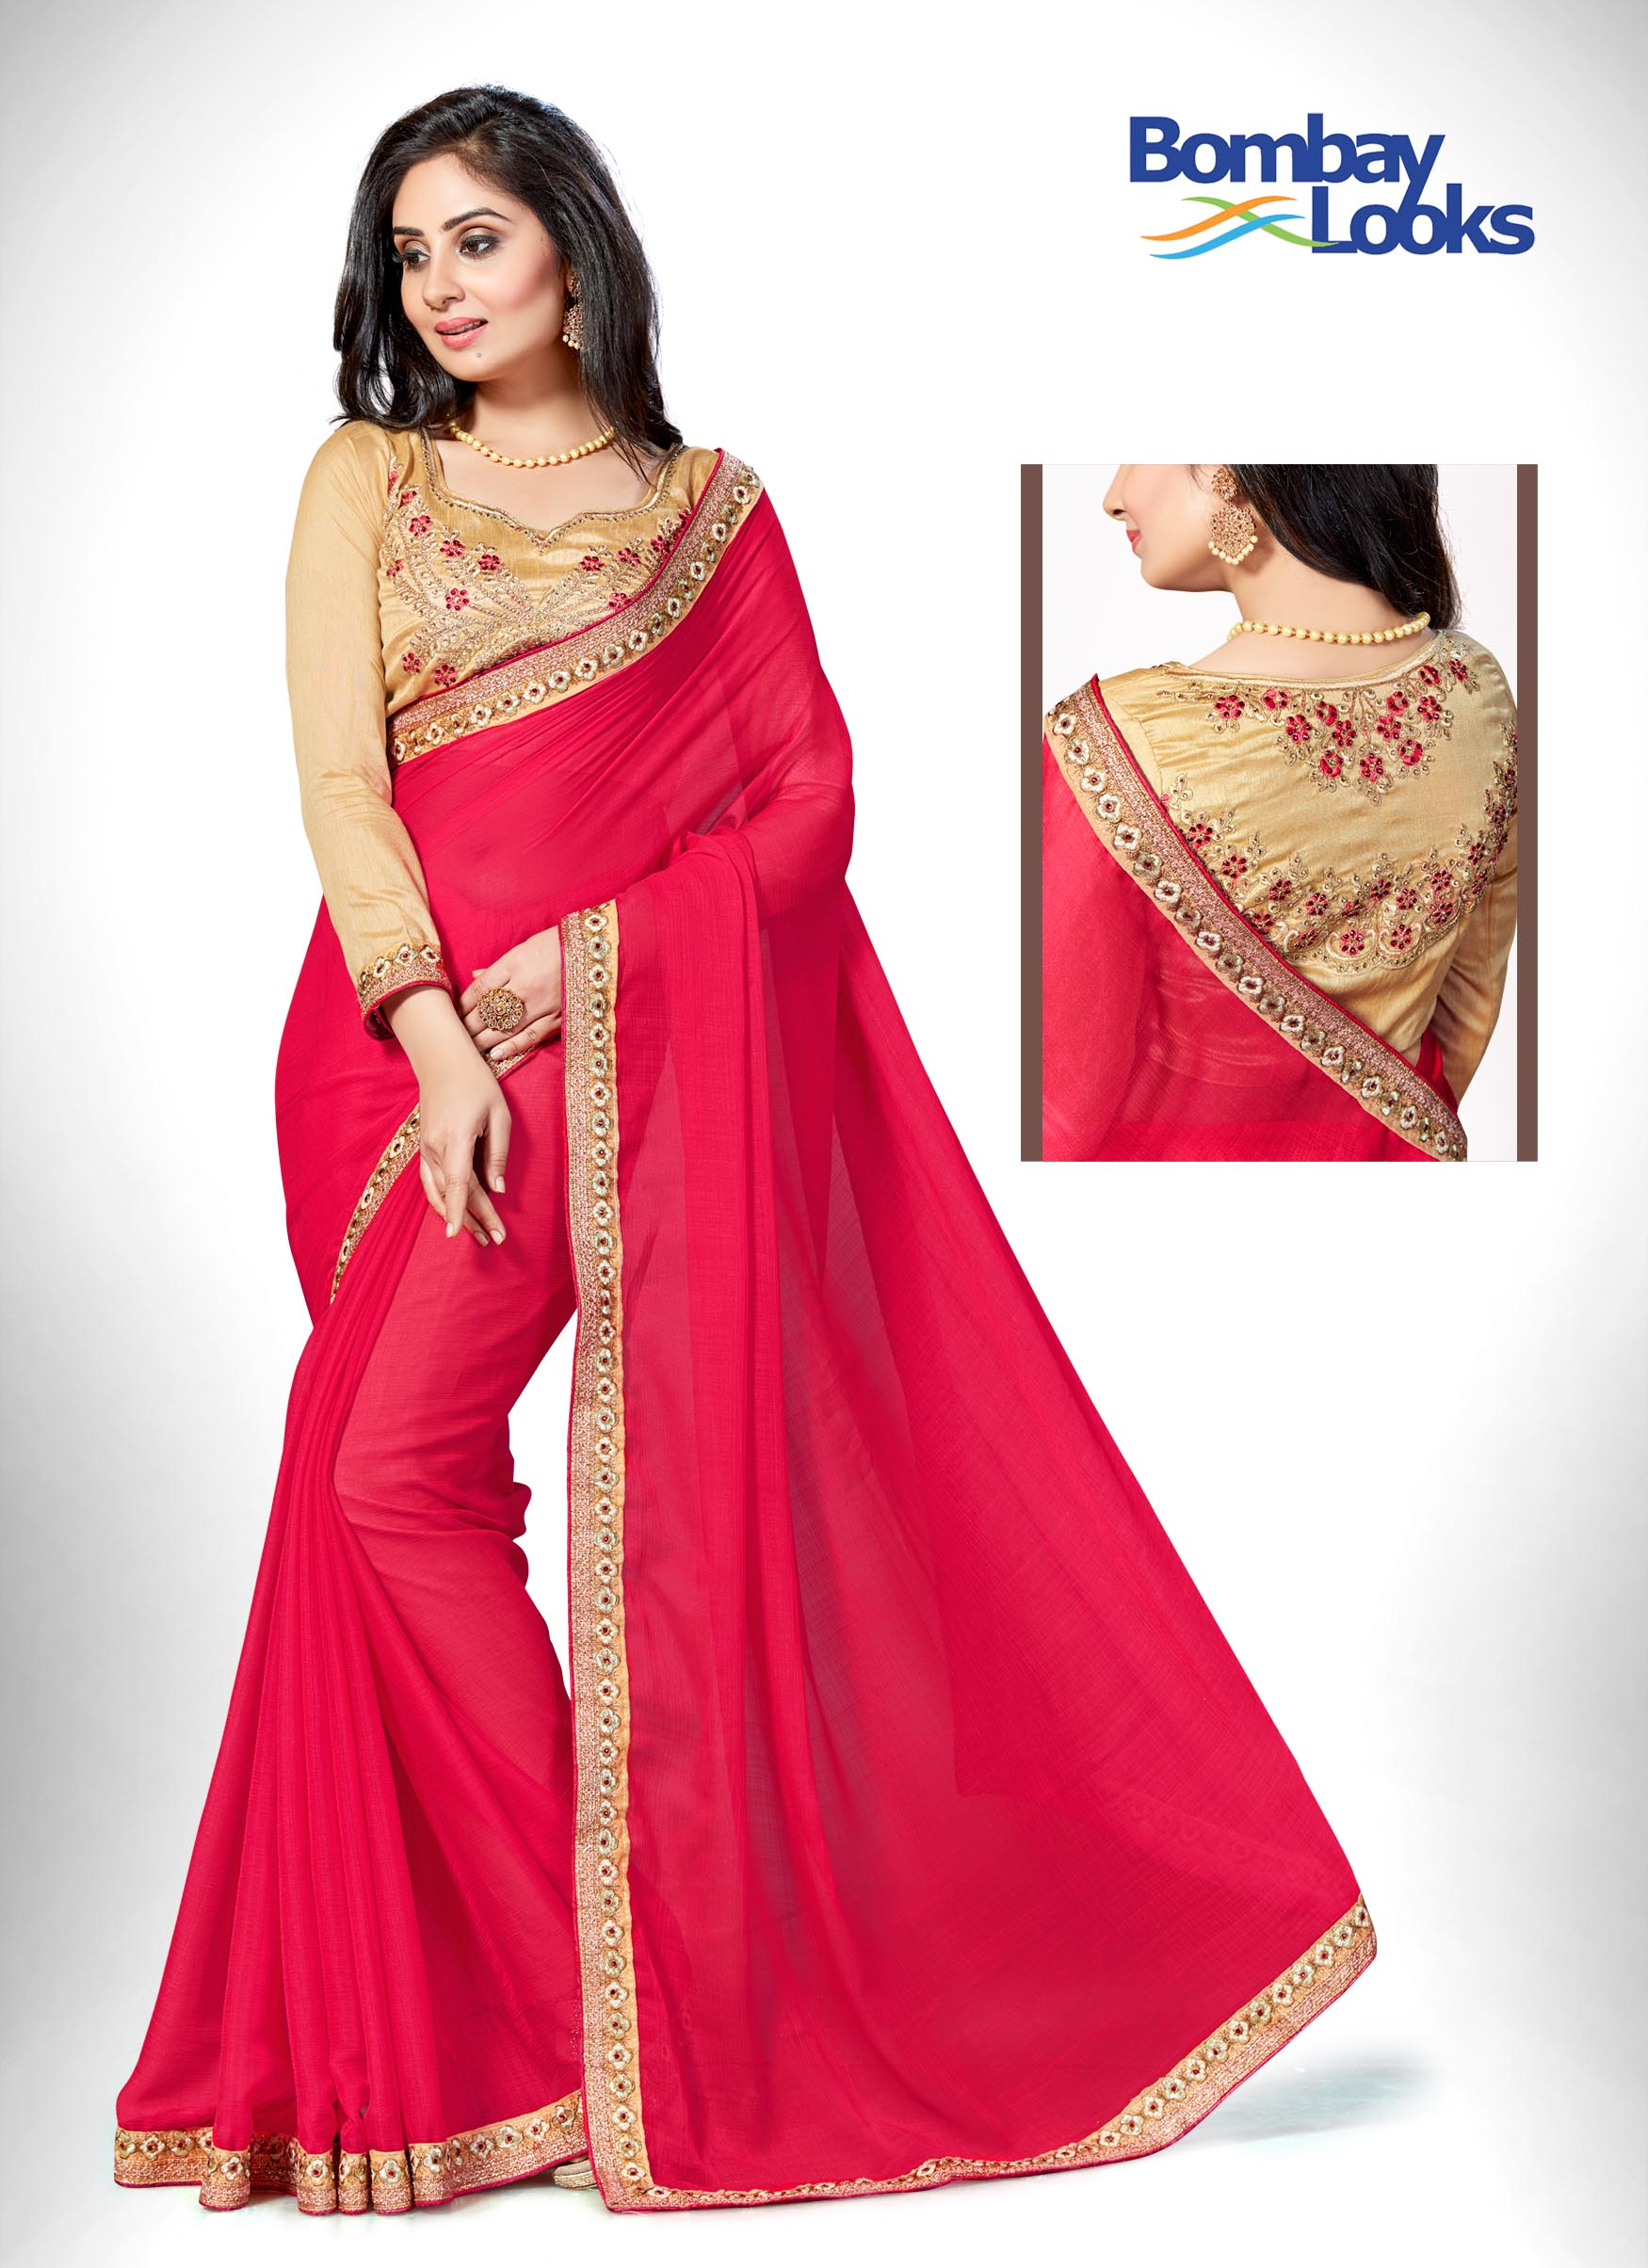 Pretty Rani Pink saree with dainty gold border